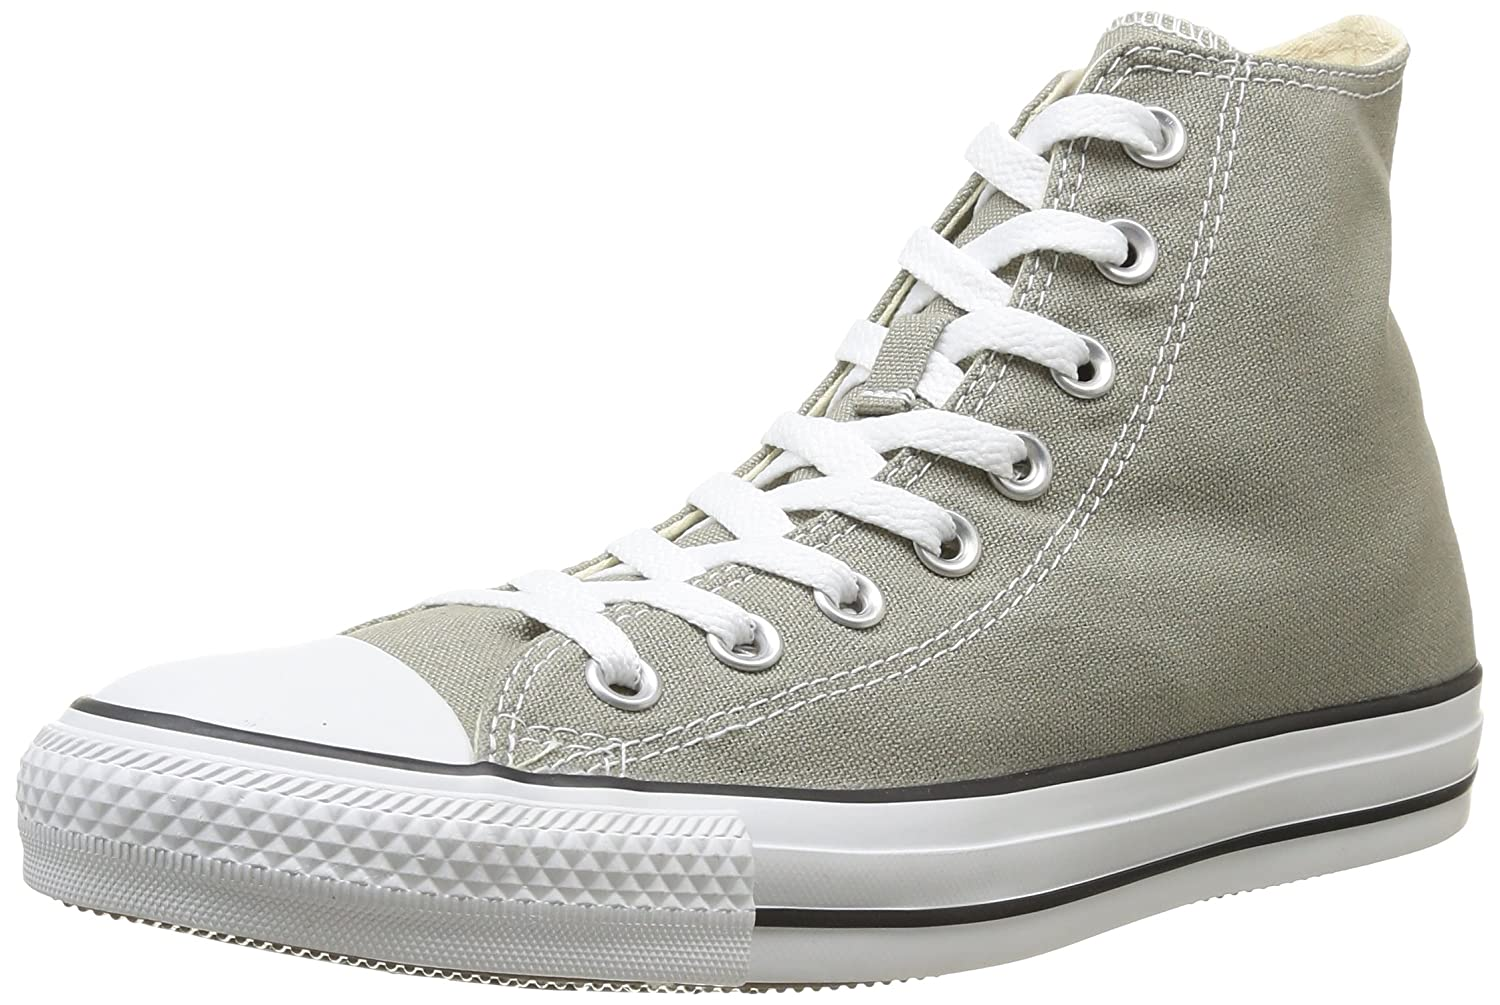 Converse Chuck Taylor All Star Adulte Shearling Hi 381730 Argento Unisex   Erwachsene Sneaker Argento 381730 (Old Silver) 0473aa